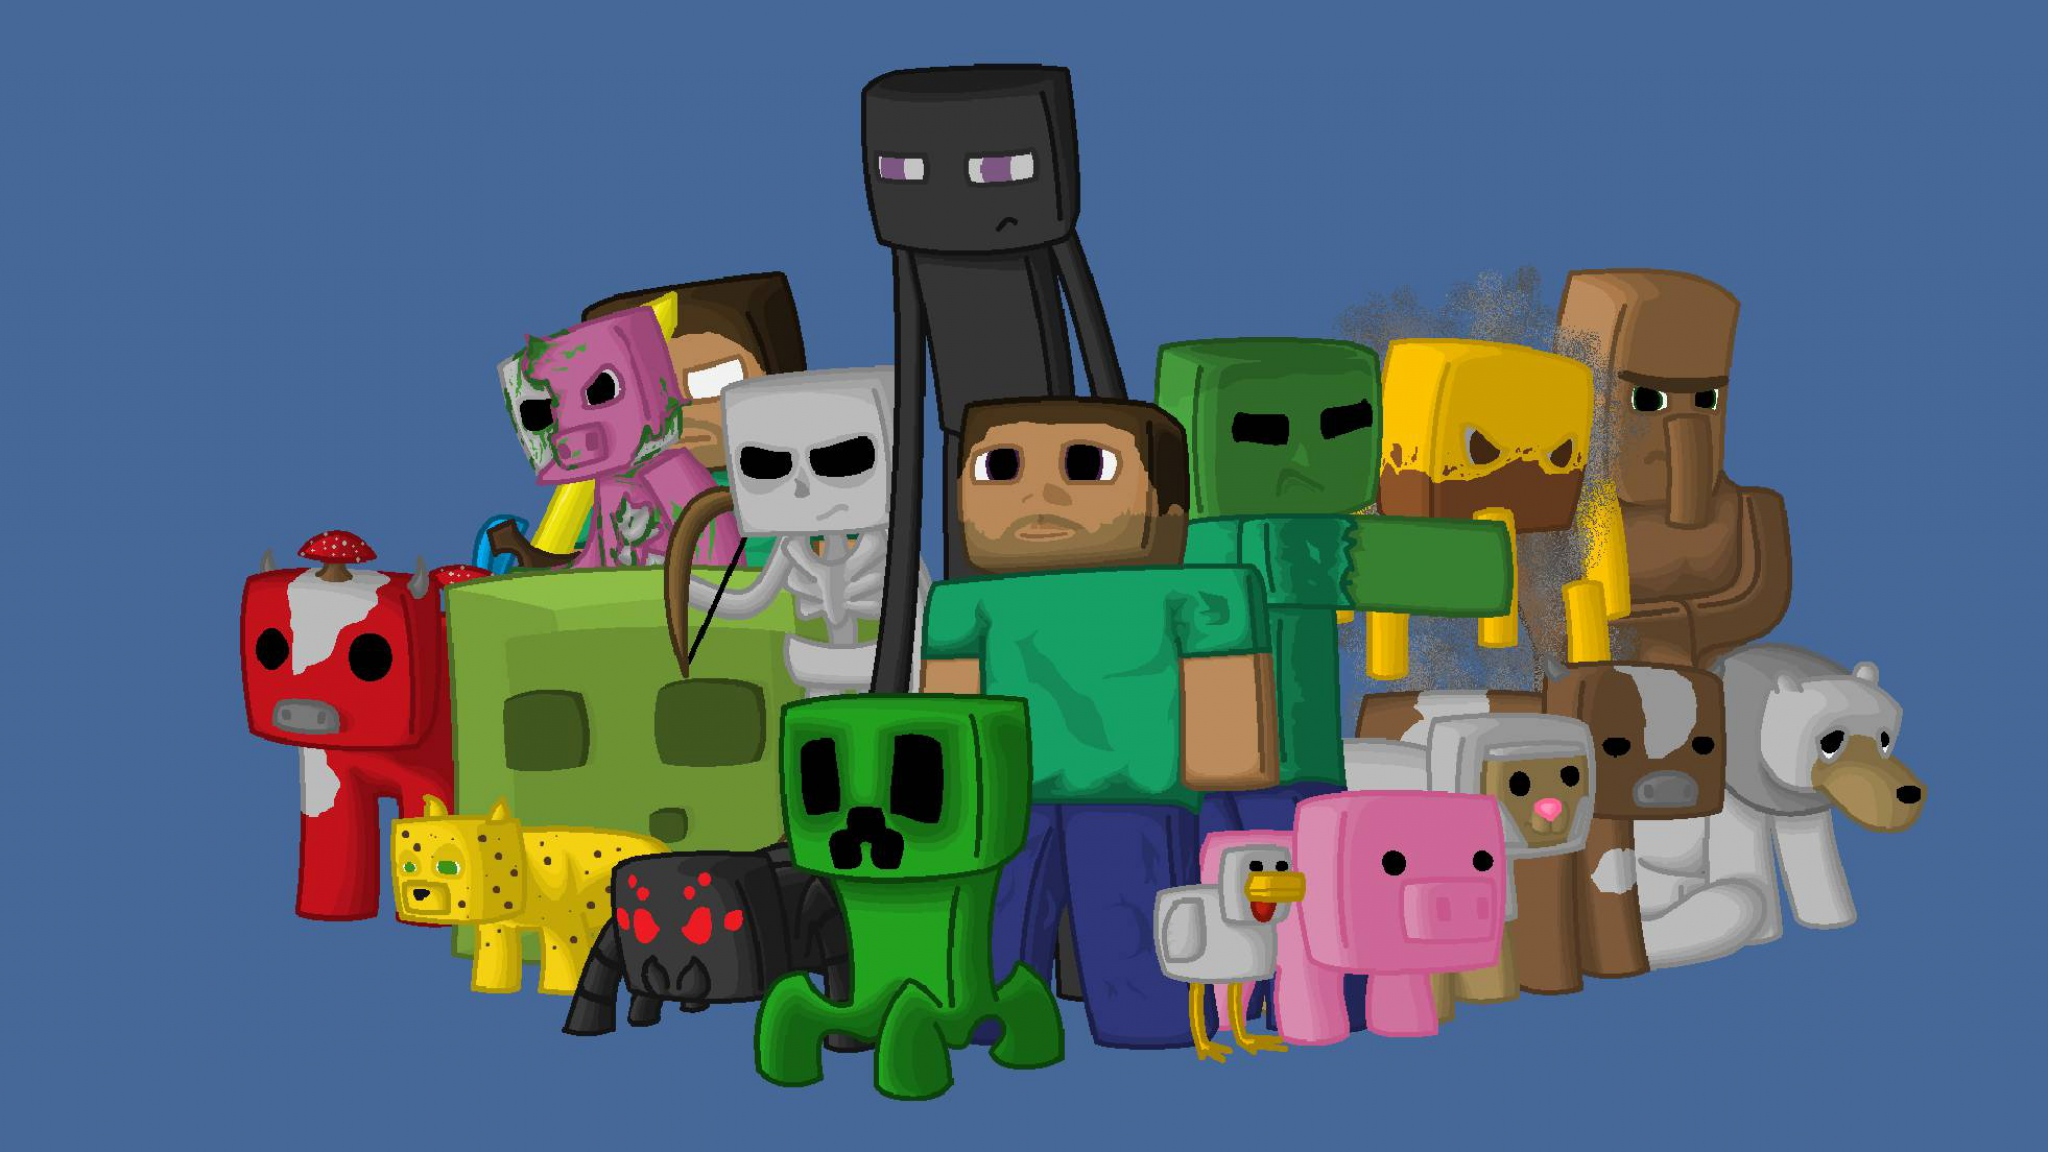 Download Wallpaper 2048x1152 Minecraft Characters Game Pixels Java 2048x1152